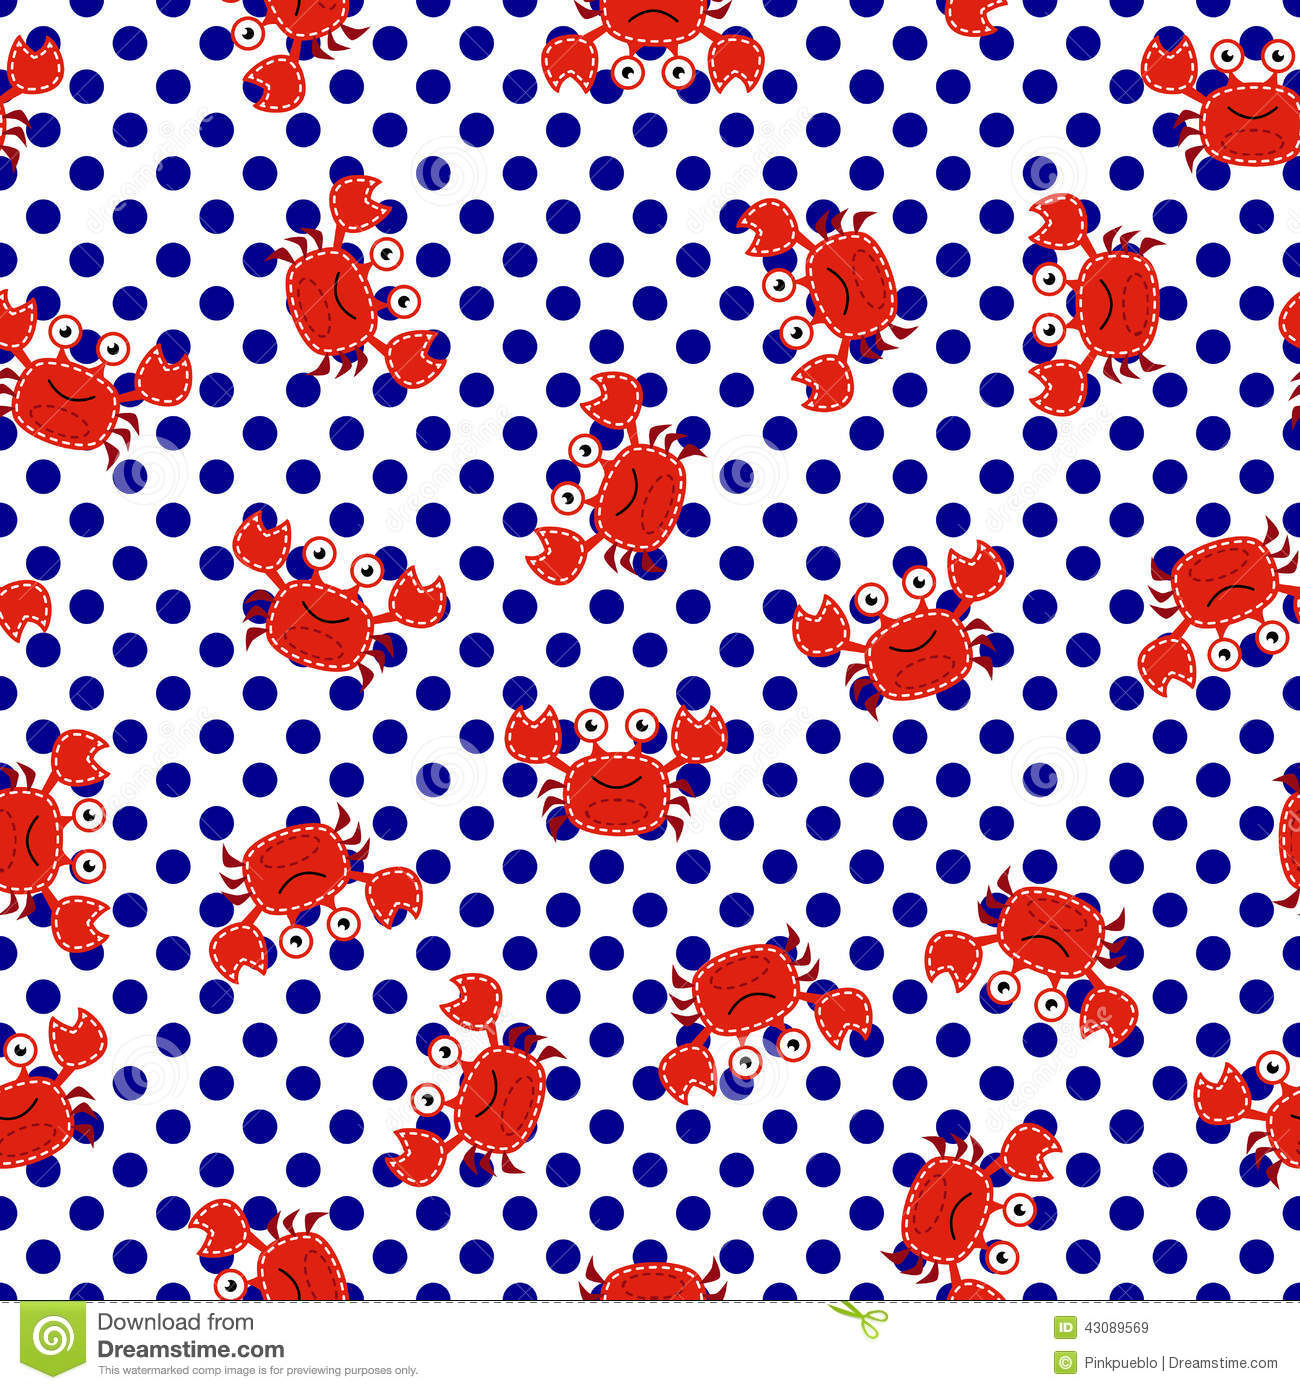 Seamless Tileable Nautical Themed Vector Background or WallpaperPreppy Anchor Wallpaper